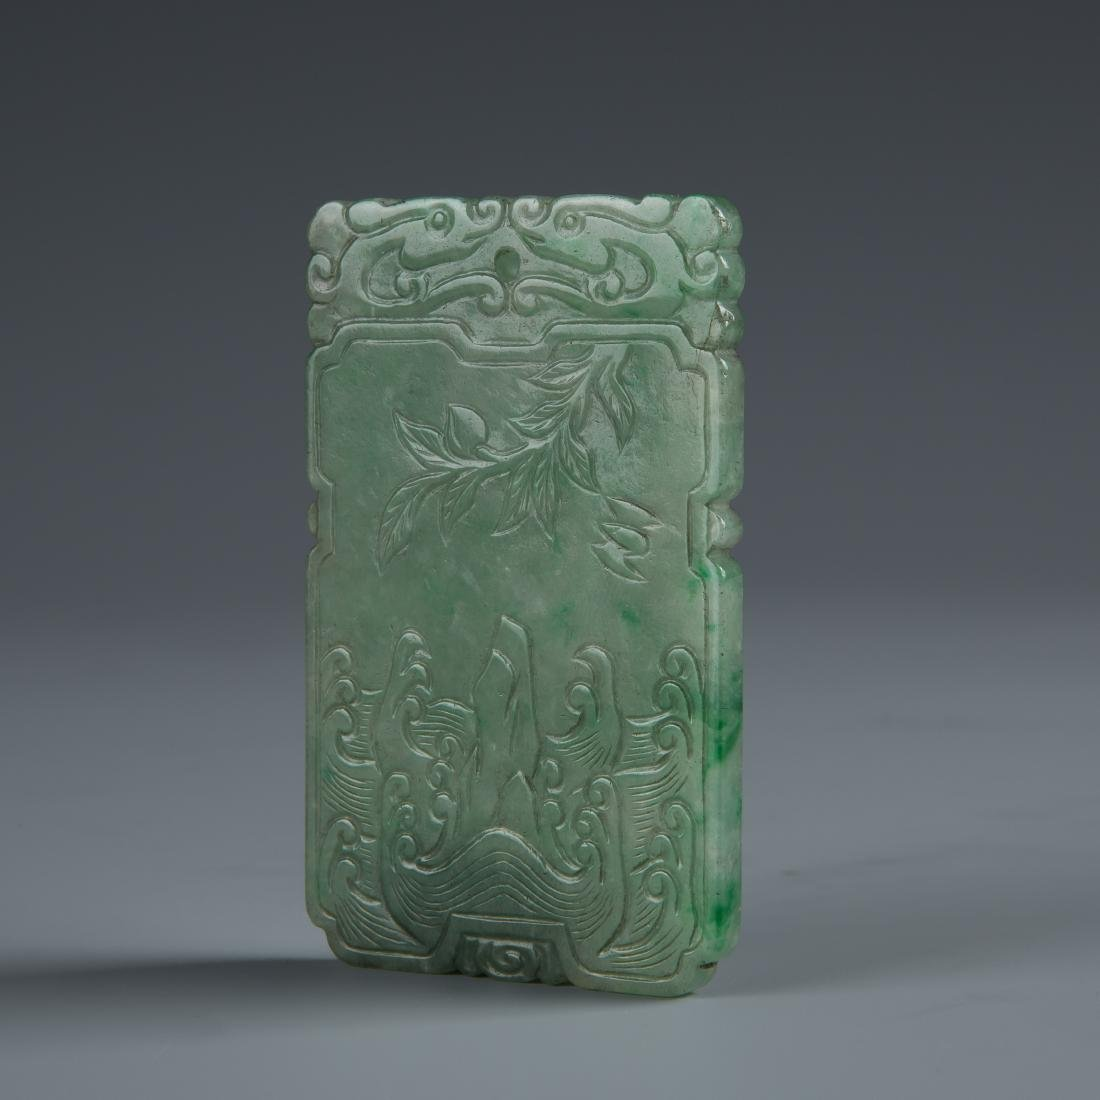 Carved Green Jade Pendant with Mark - 2